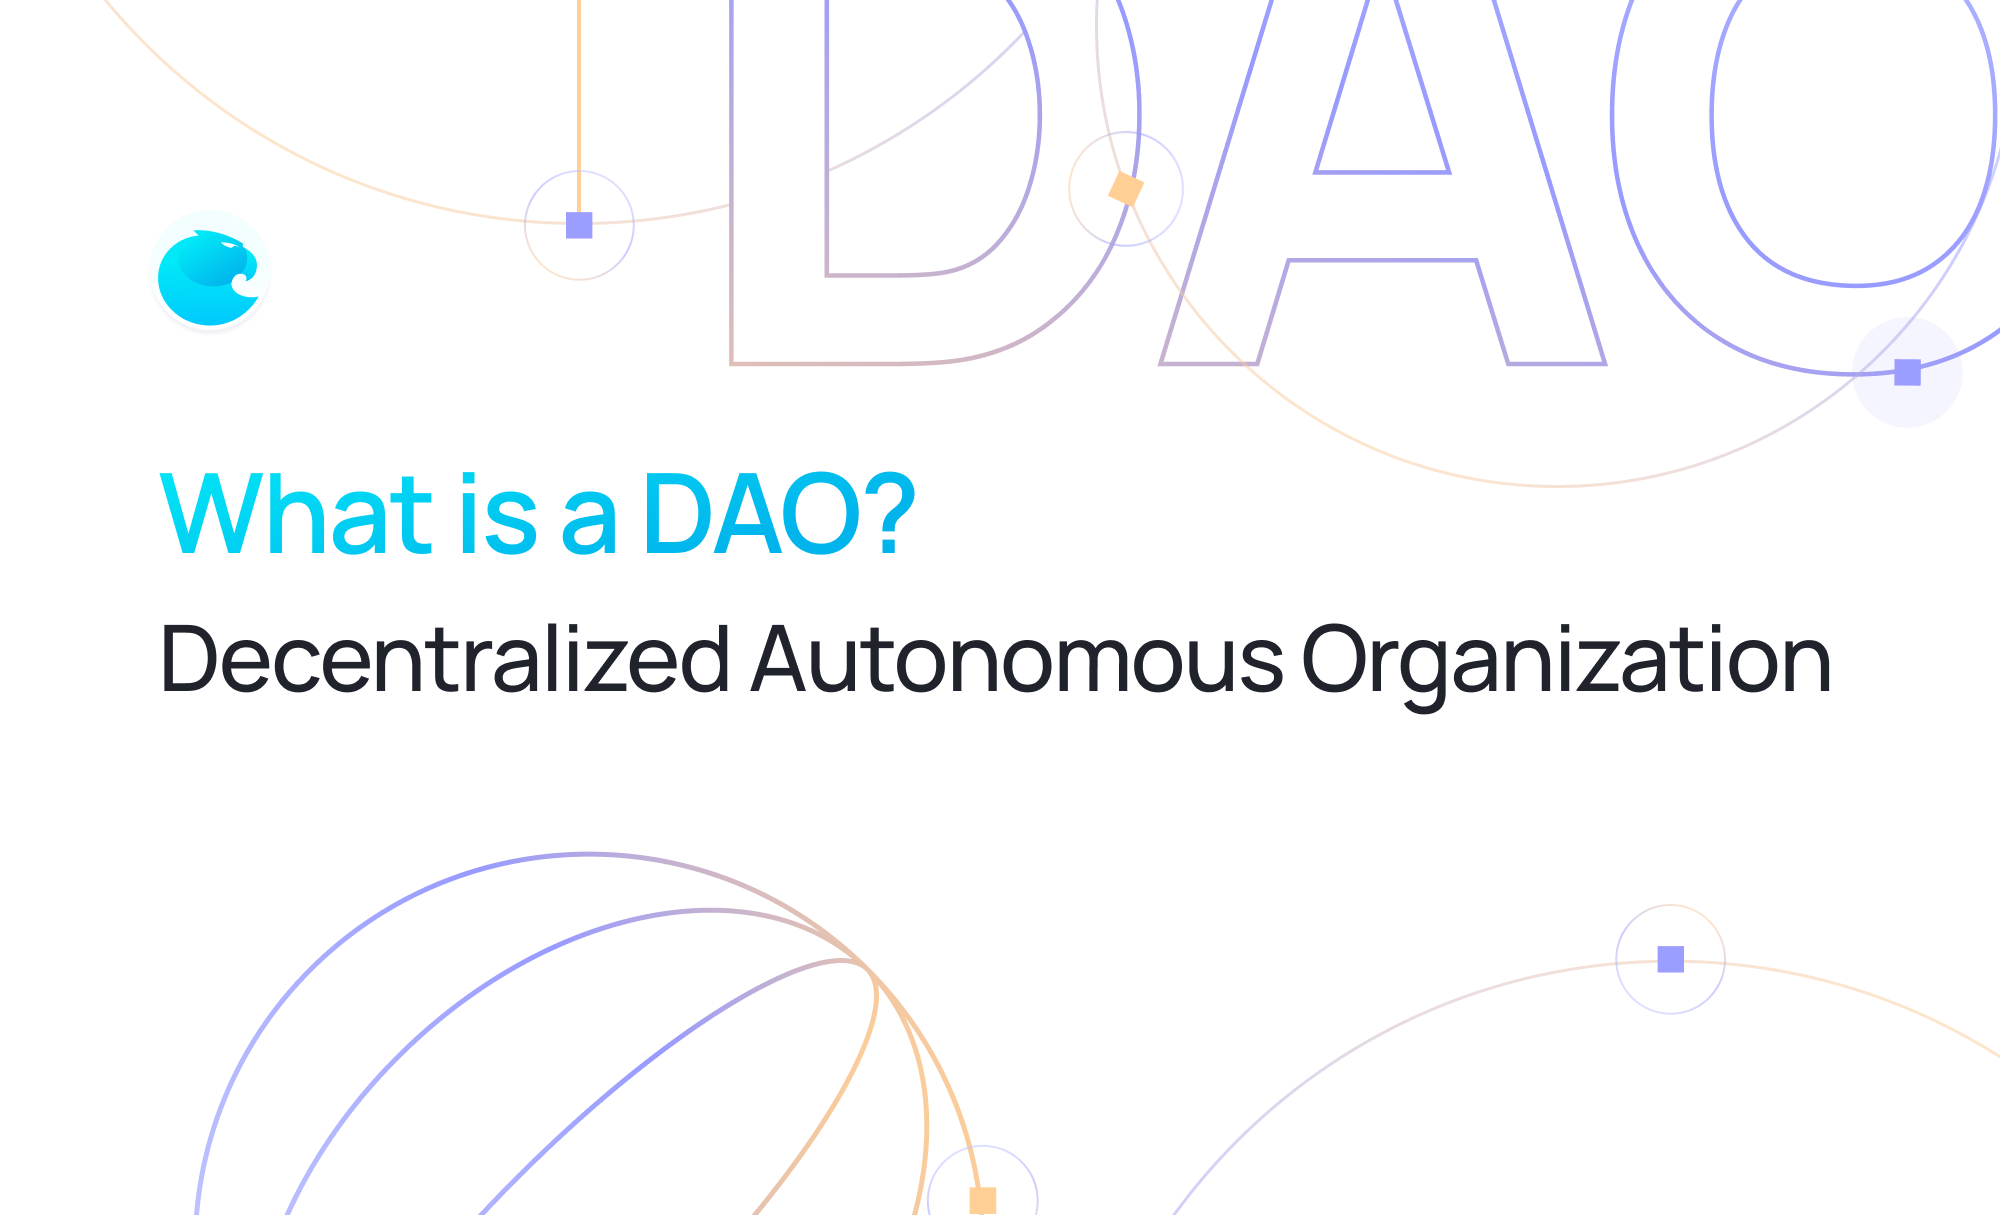 What is a DAO?